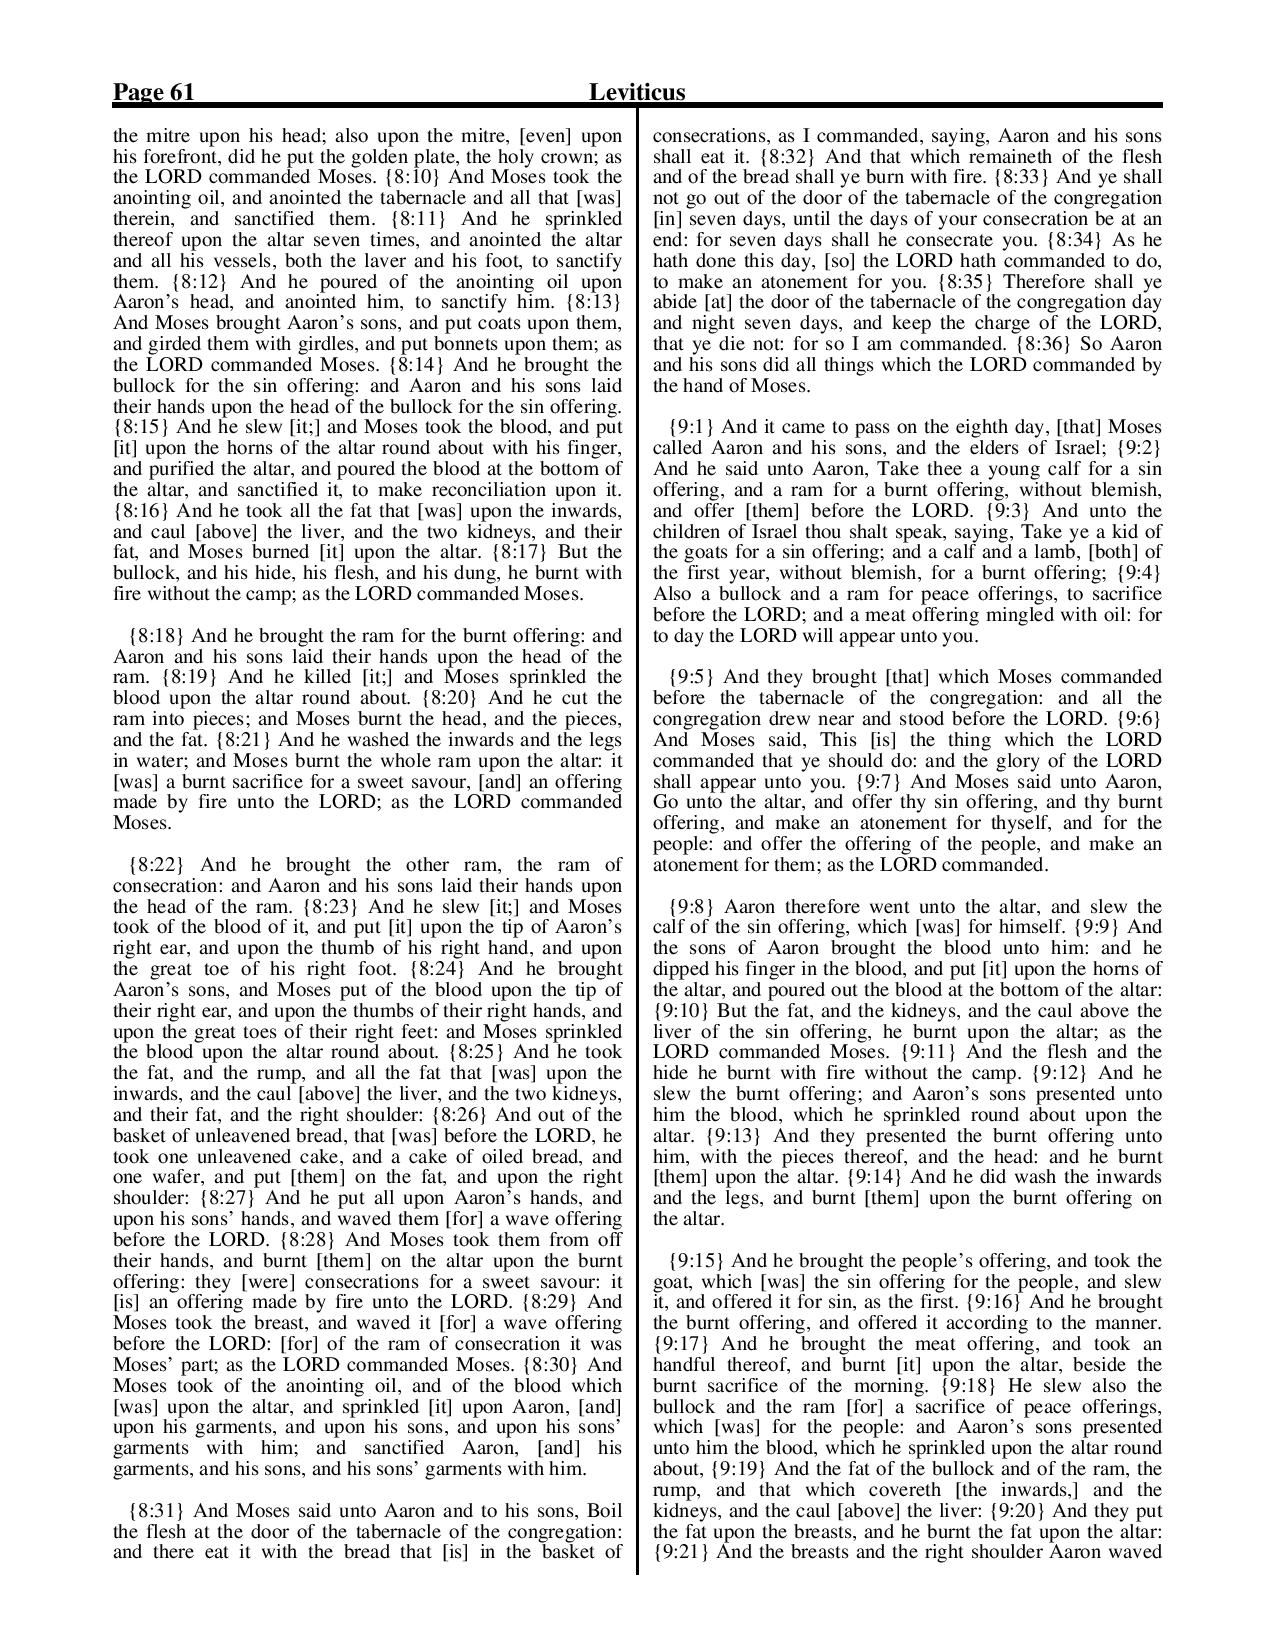 King-James-Bible-KJV-Bible-PDF-page-082